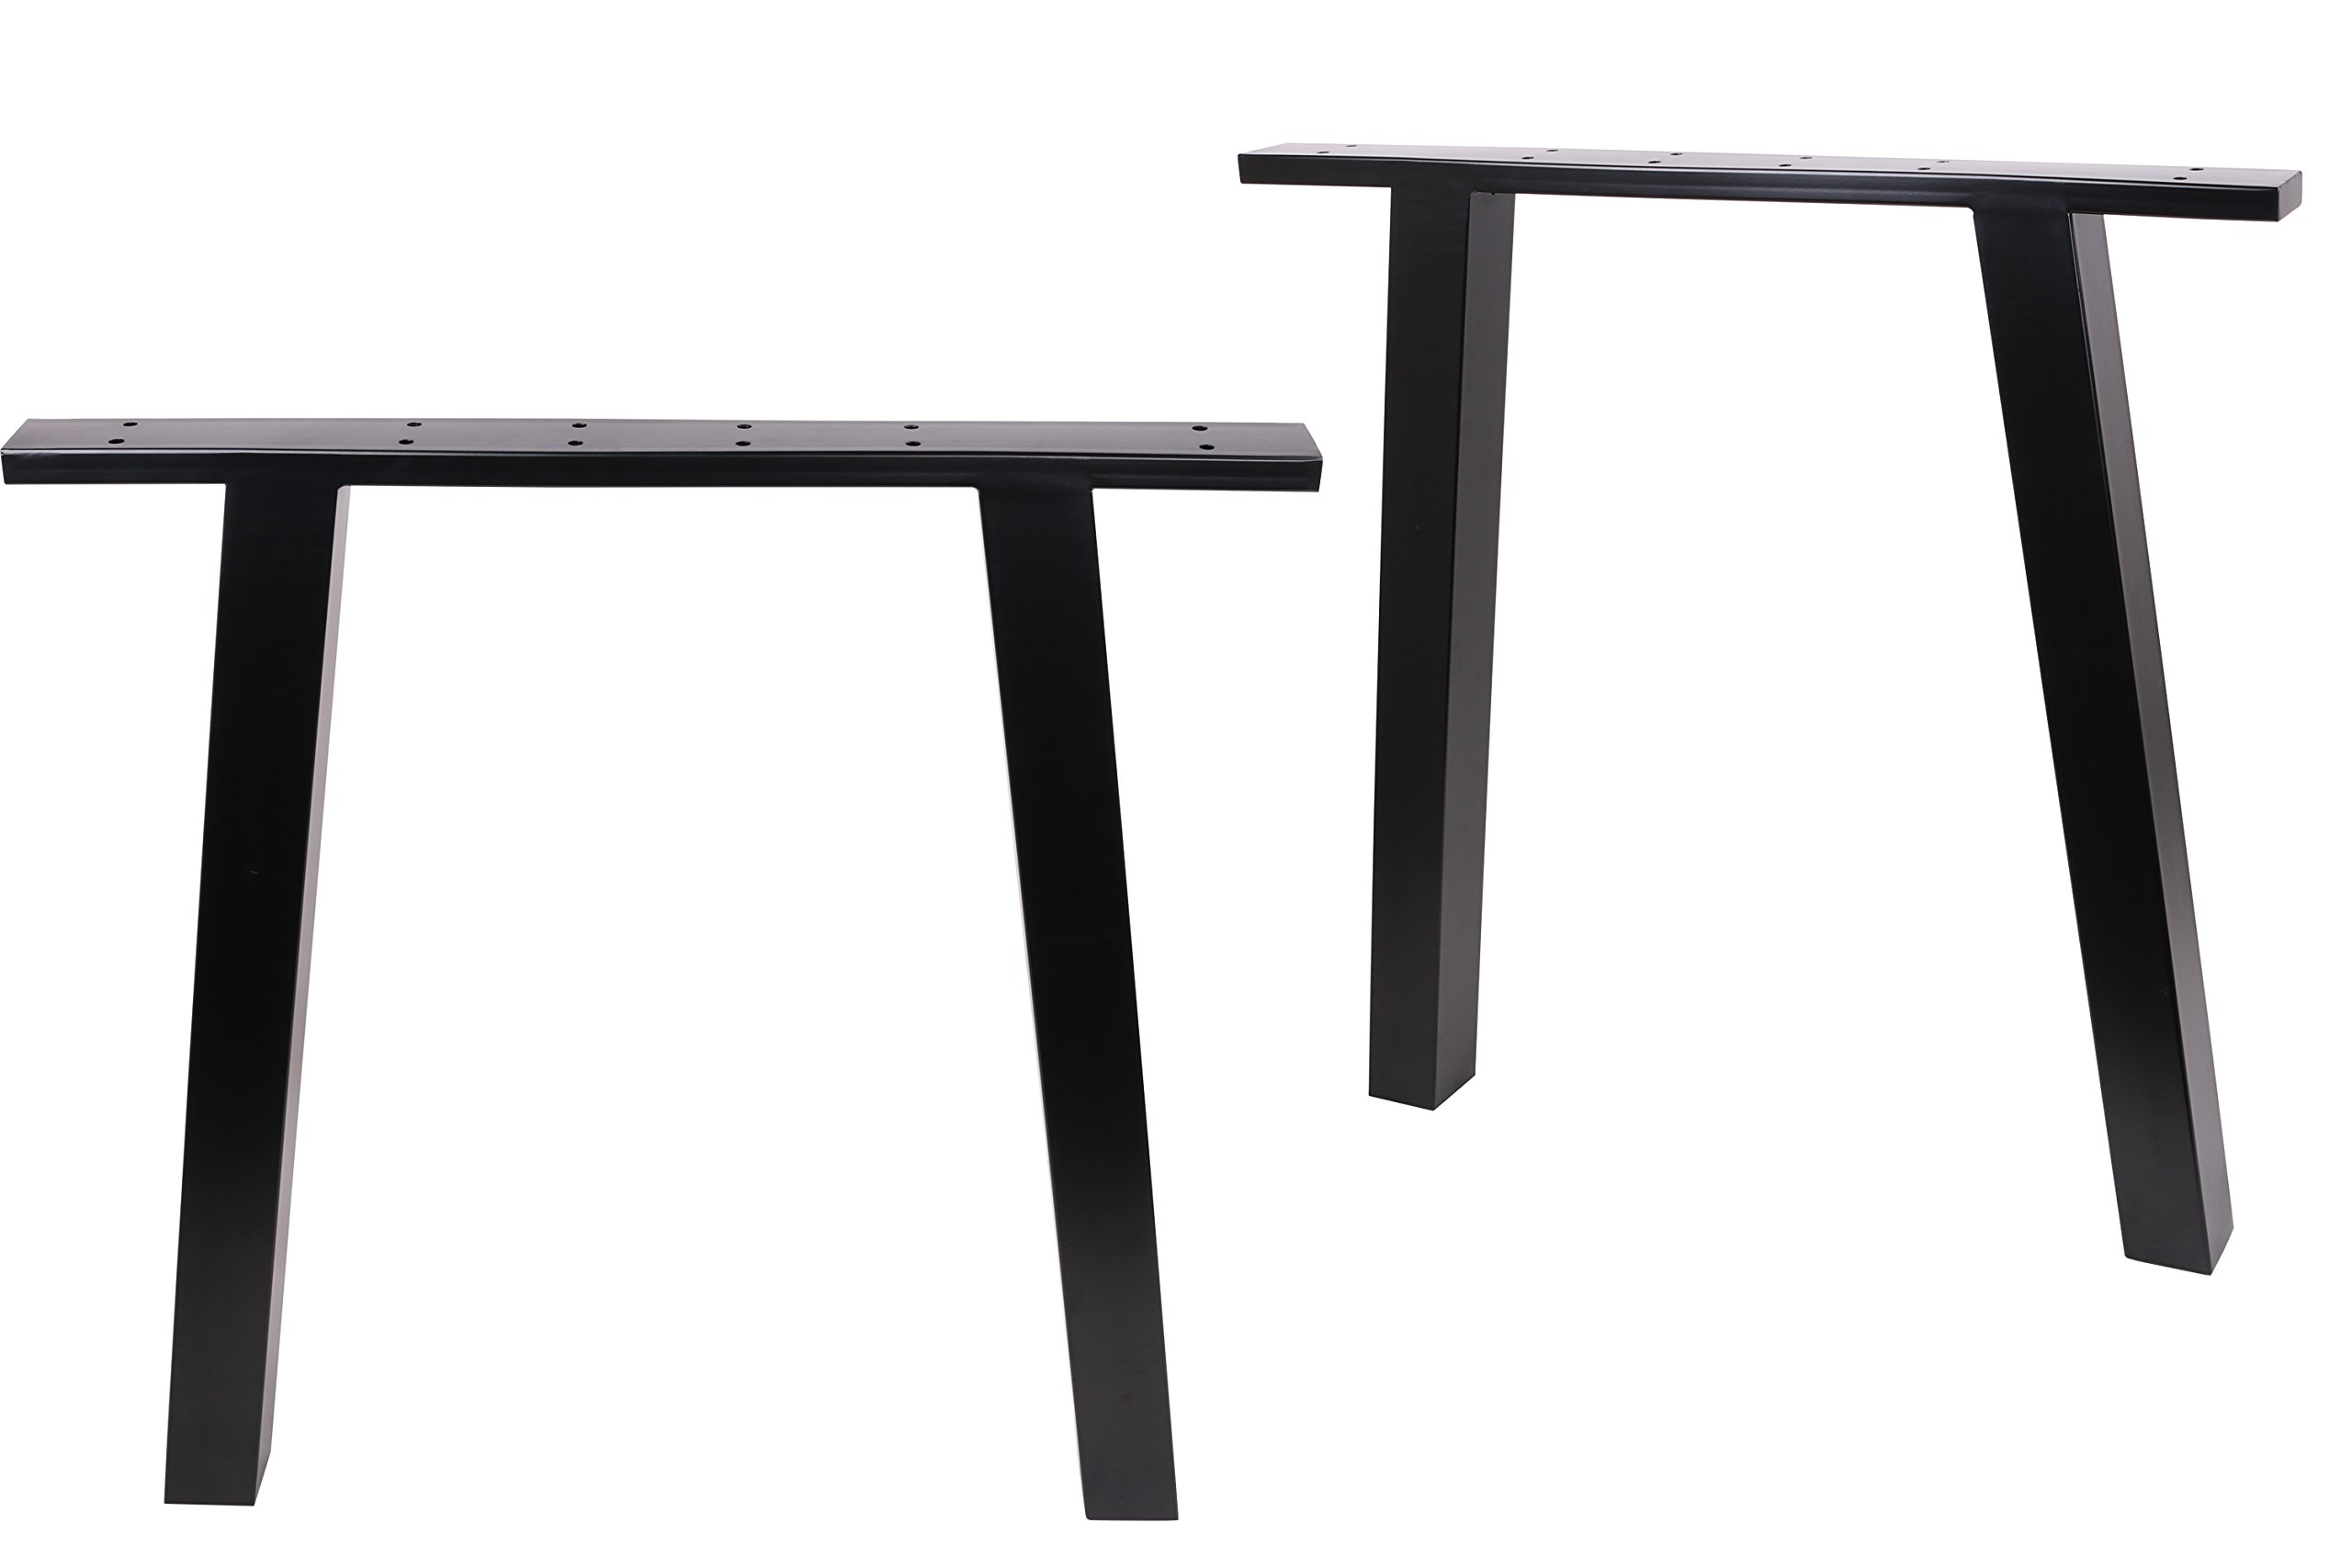 ECLV N-710-K Dining Table Legs, Vintage Steel Table Legs, Office Table Legs, Computer Desk Legs, Industrial Kitchen Table Legs, 28'' L, Black, Set of 2